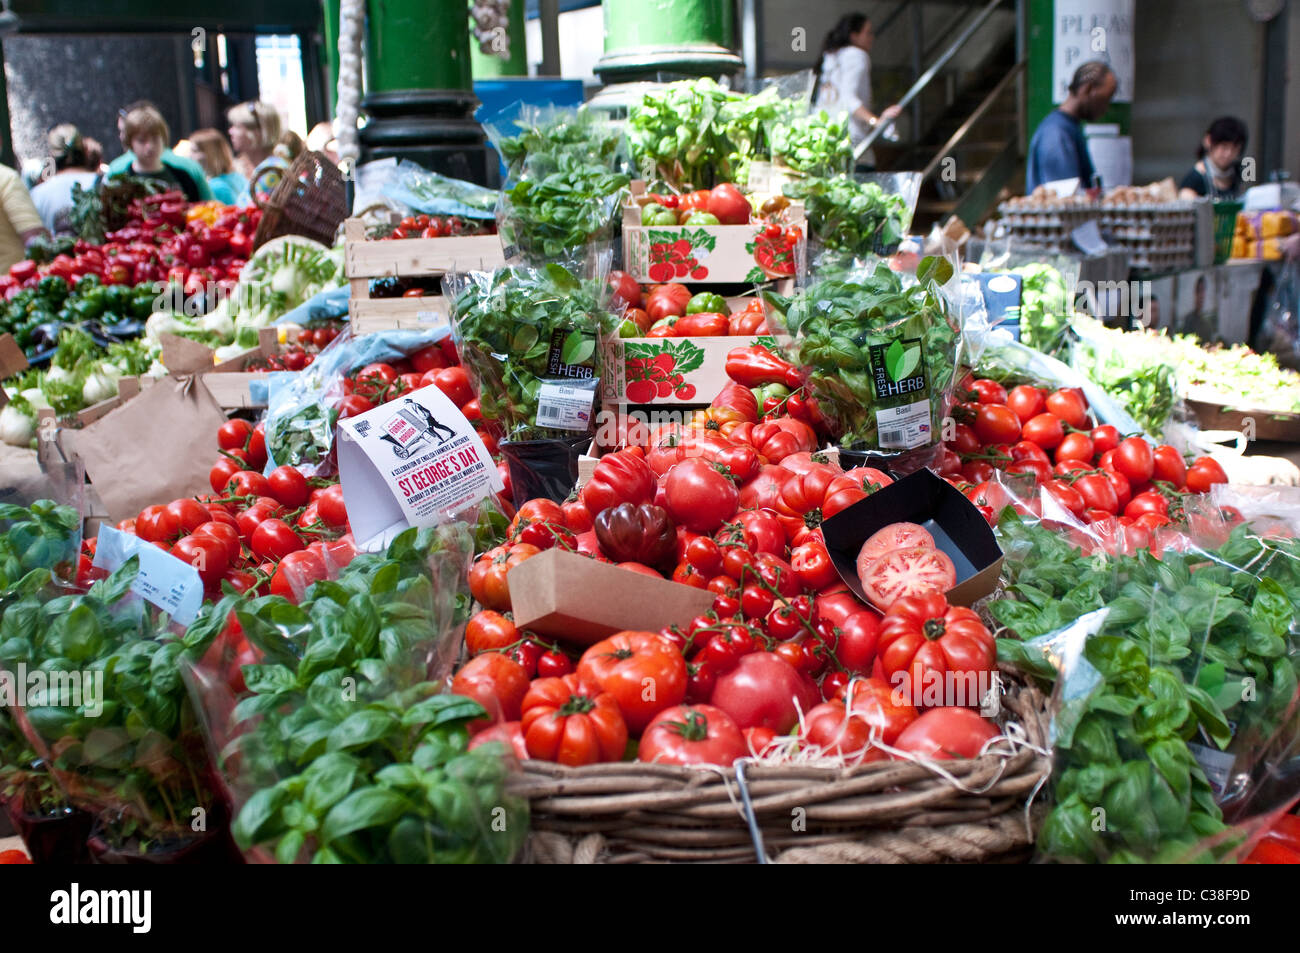 Tomatoes and basil, Borough Market, Southwark, London, UK - Stock Image